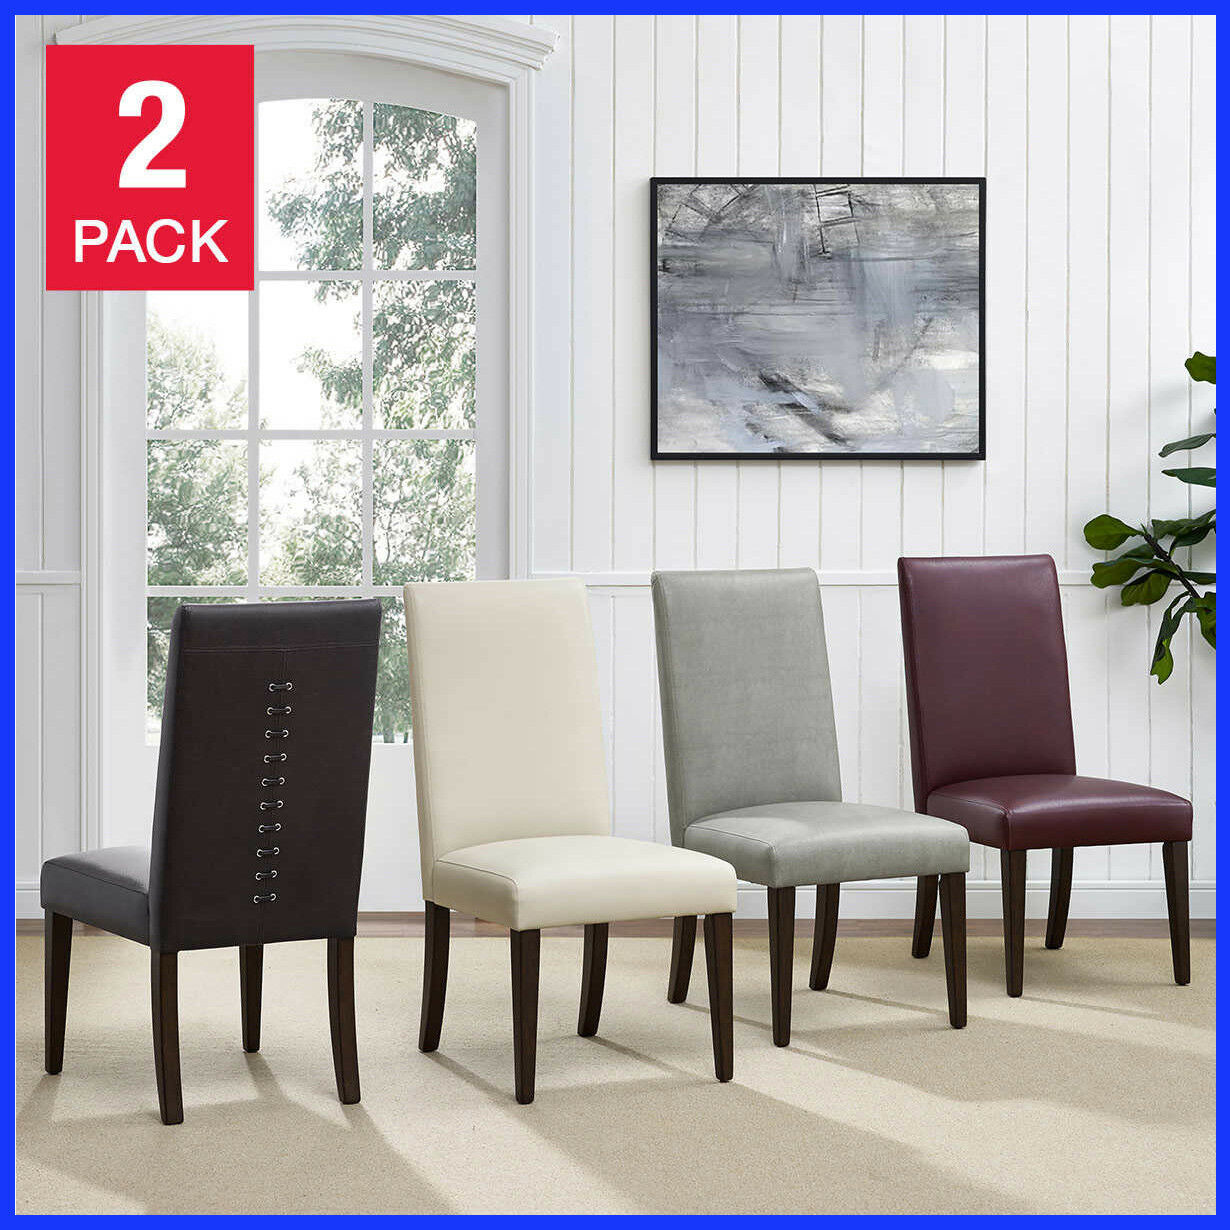 Pulaski Natalia Lace Back Dining Chair 2 pack, 4 Color